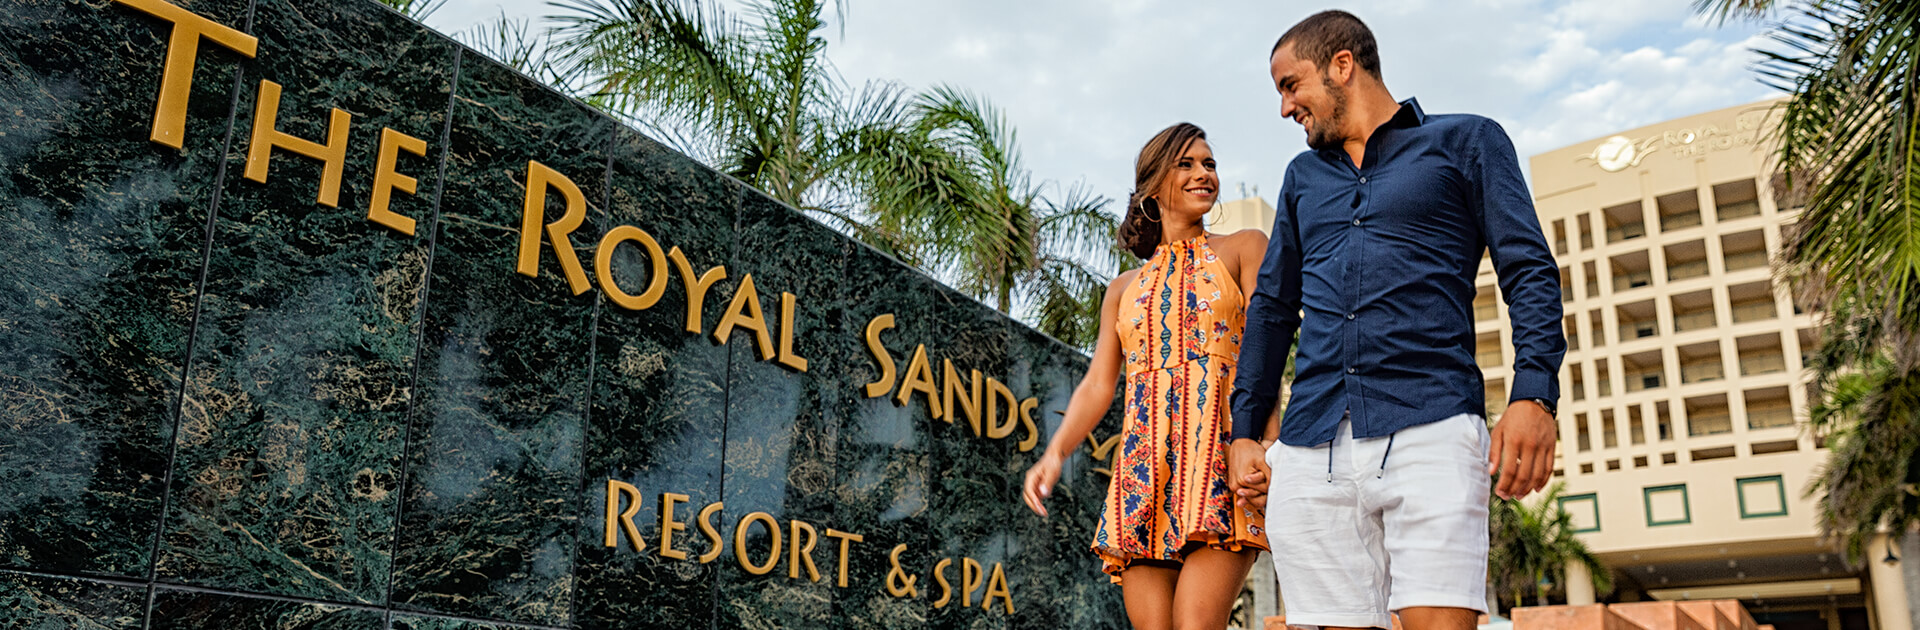 TheRoyalSands-3